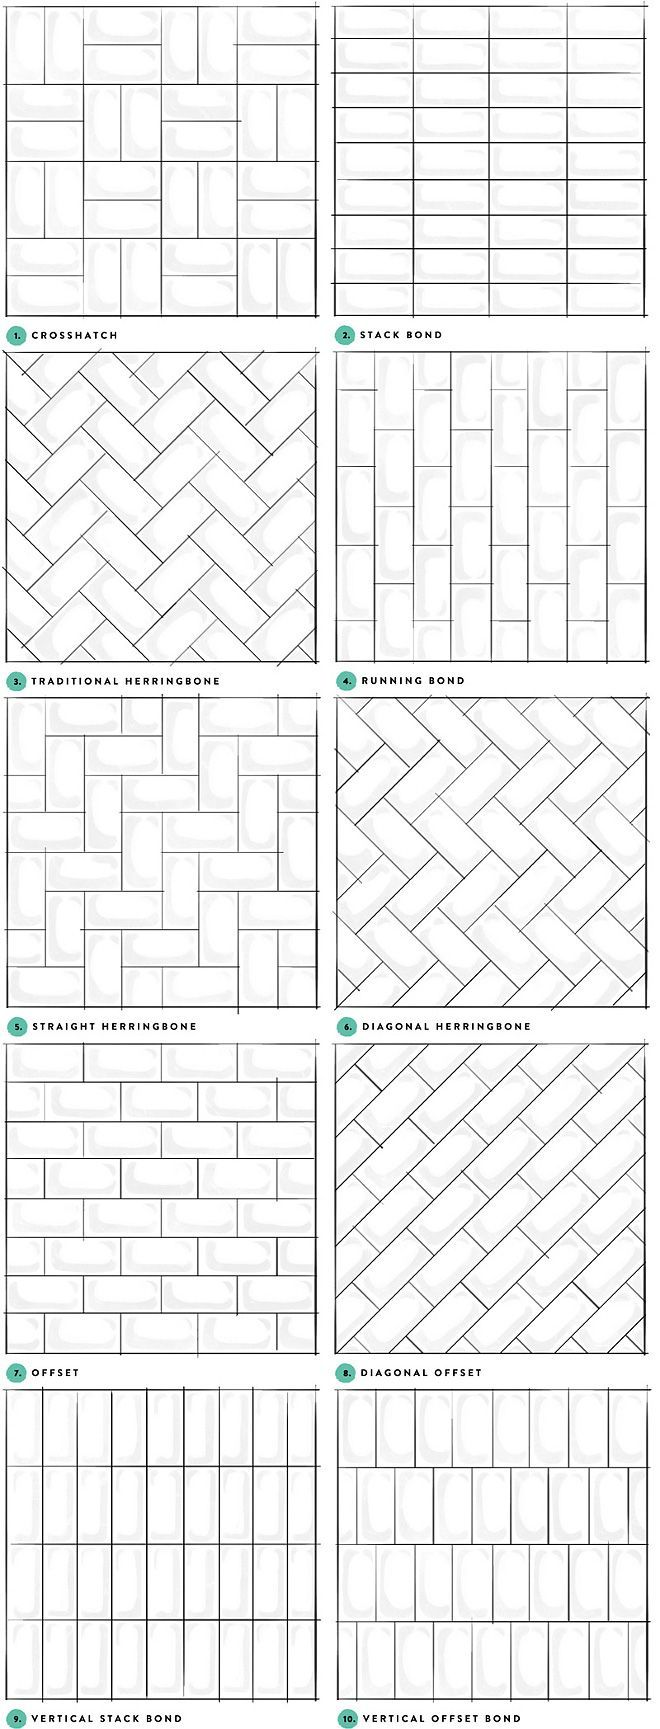 Amazing Shower Tile Patterns, Subway Tile Patterns, Subway Tiles, Subway Tile  Fireplace, White Subway Tile Shower, Shower Tile Designs, Subway Tile  Showers, ...